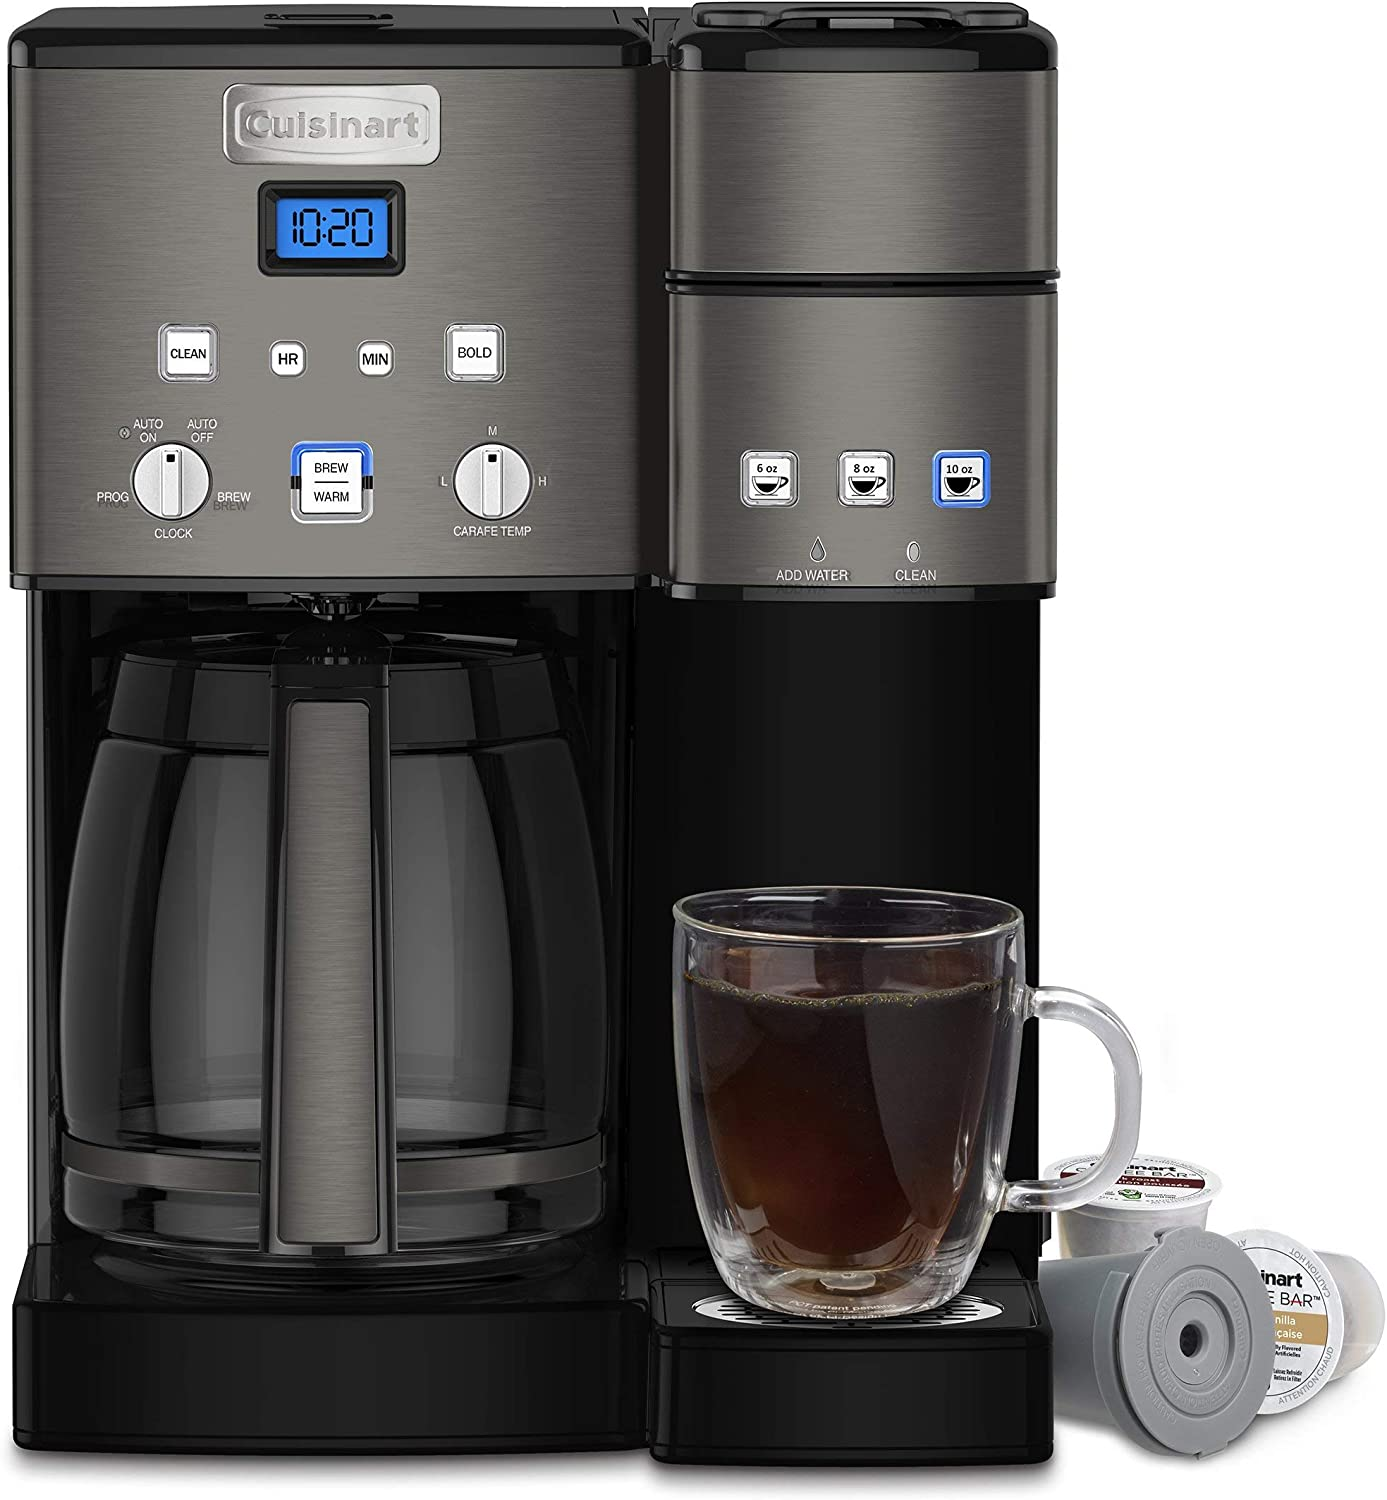 Amazon.com: Cafetera Cuisinart Maker Coffee Center de 12 ...